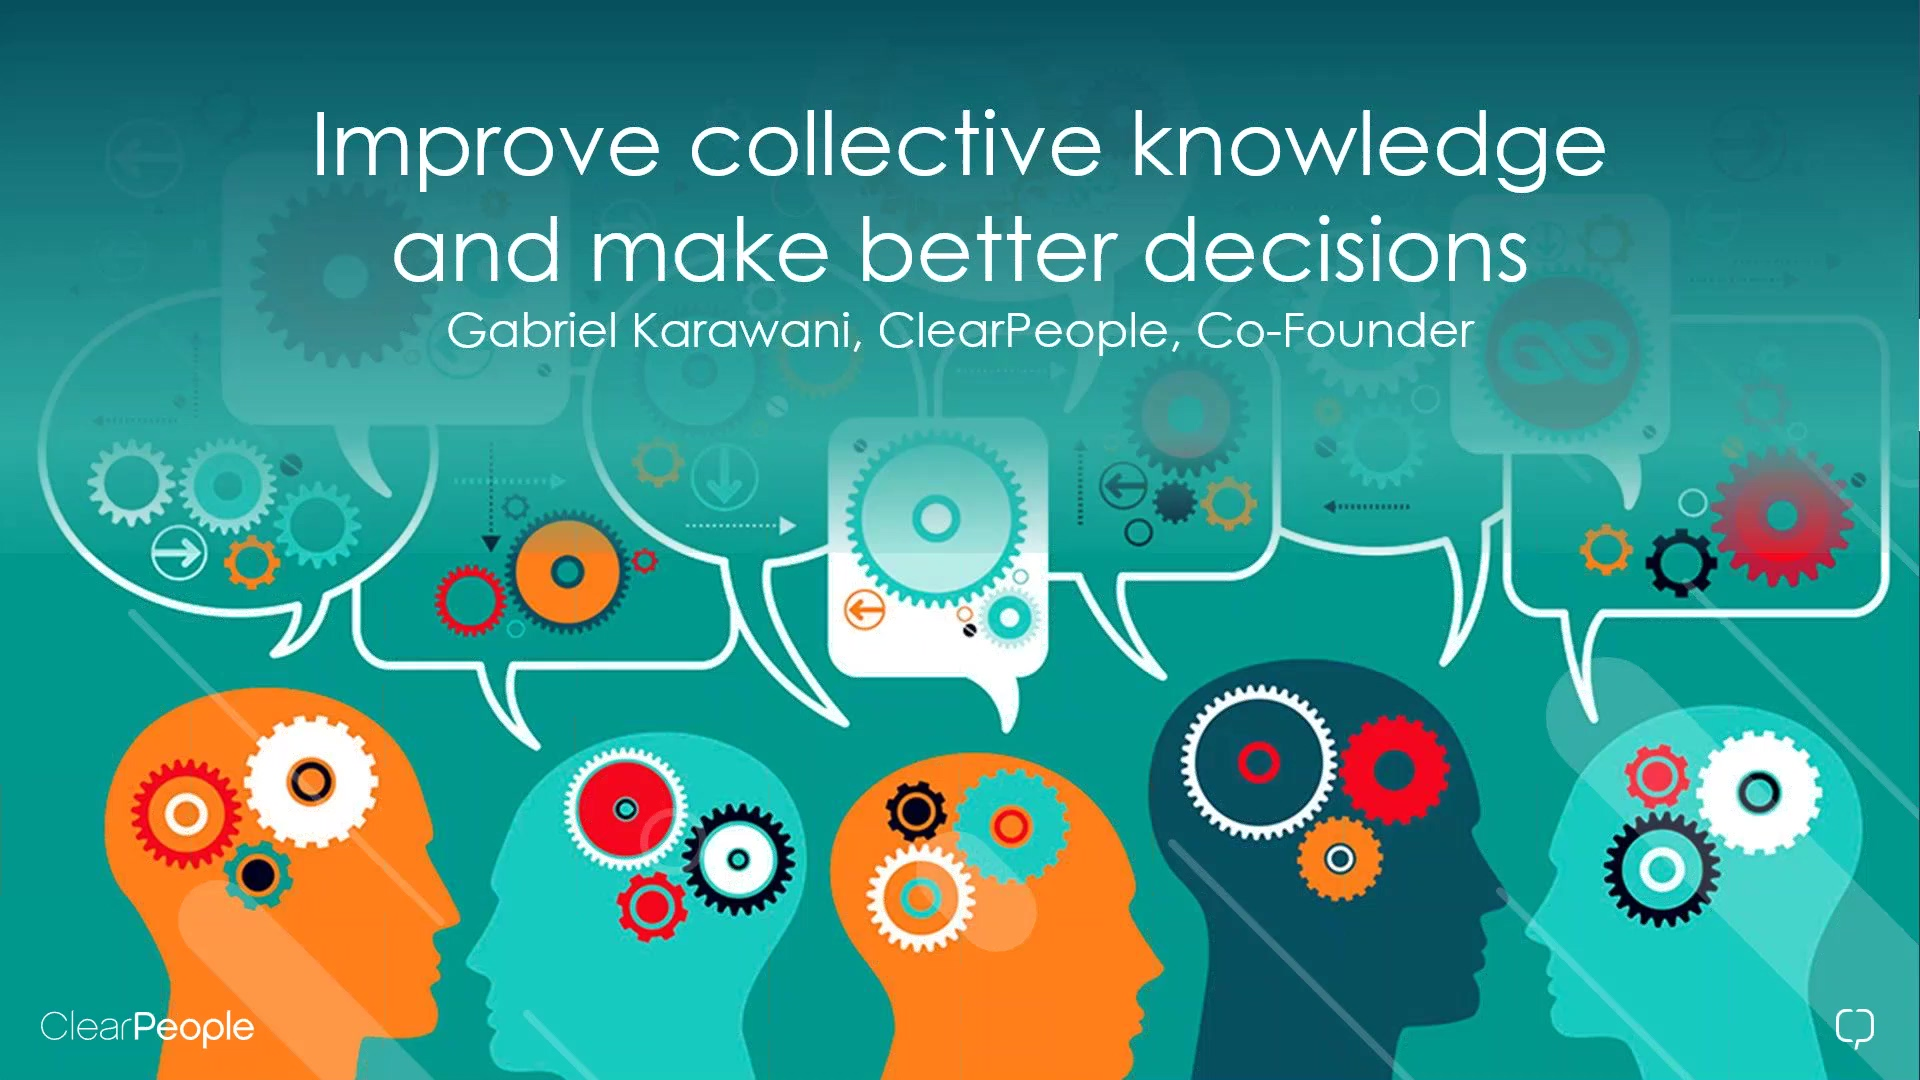 Improve collective knowledge and make better decisions